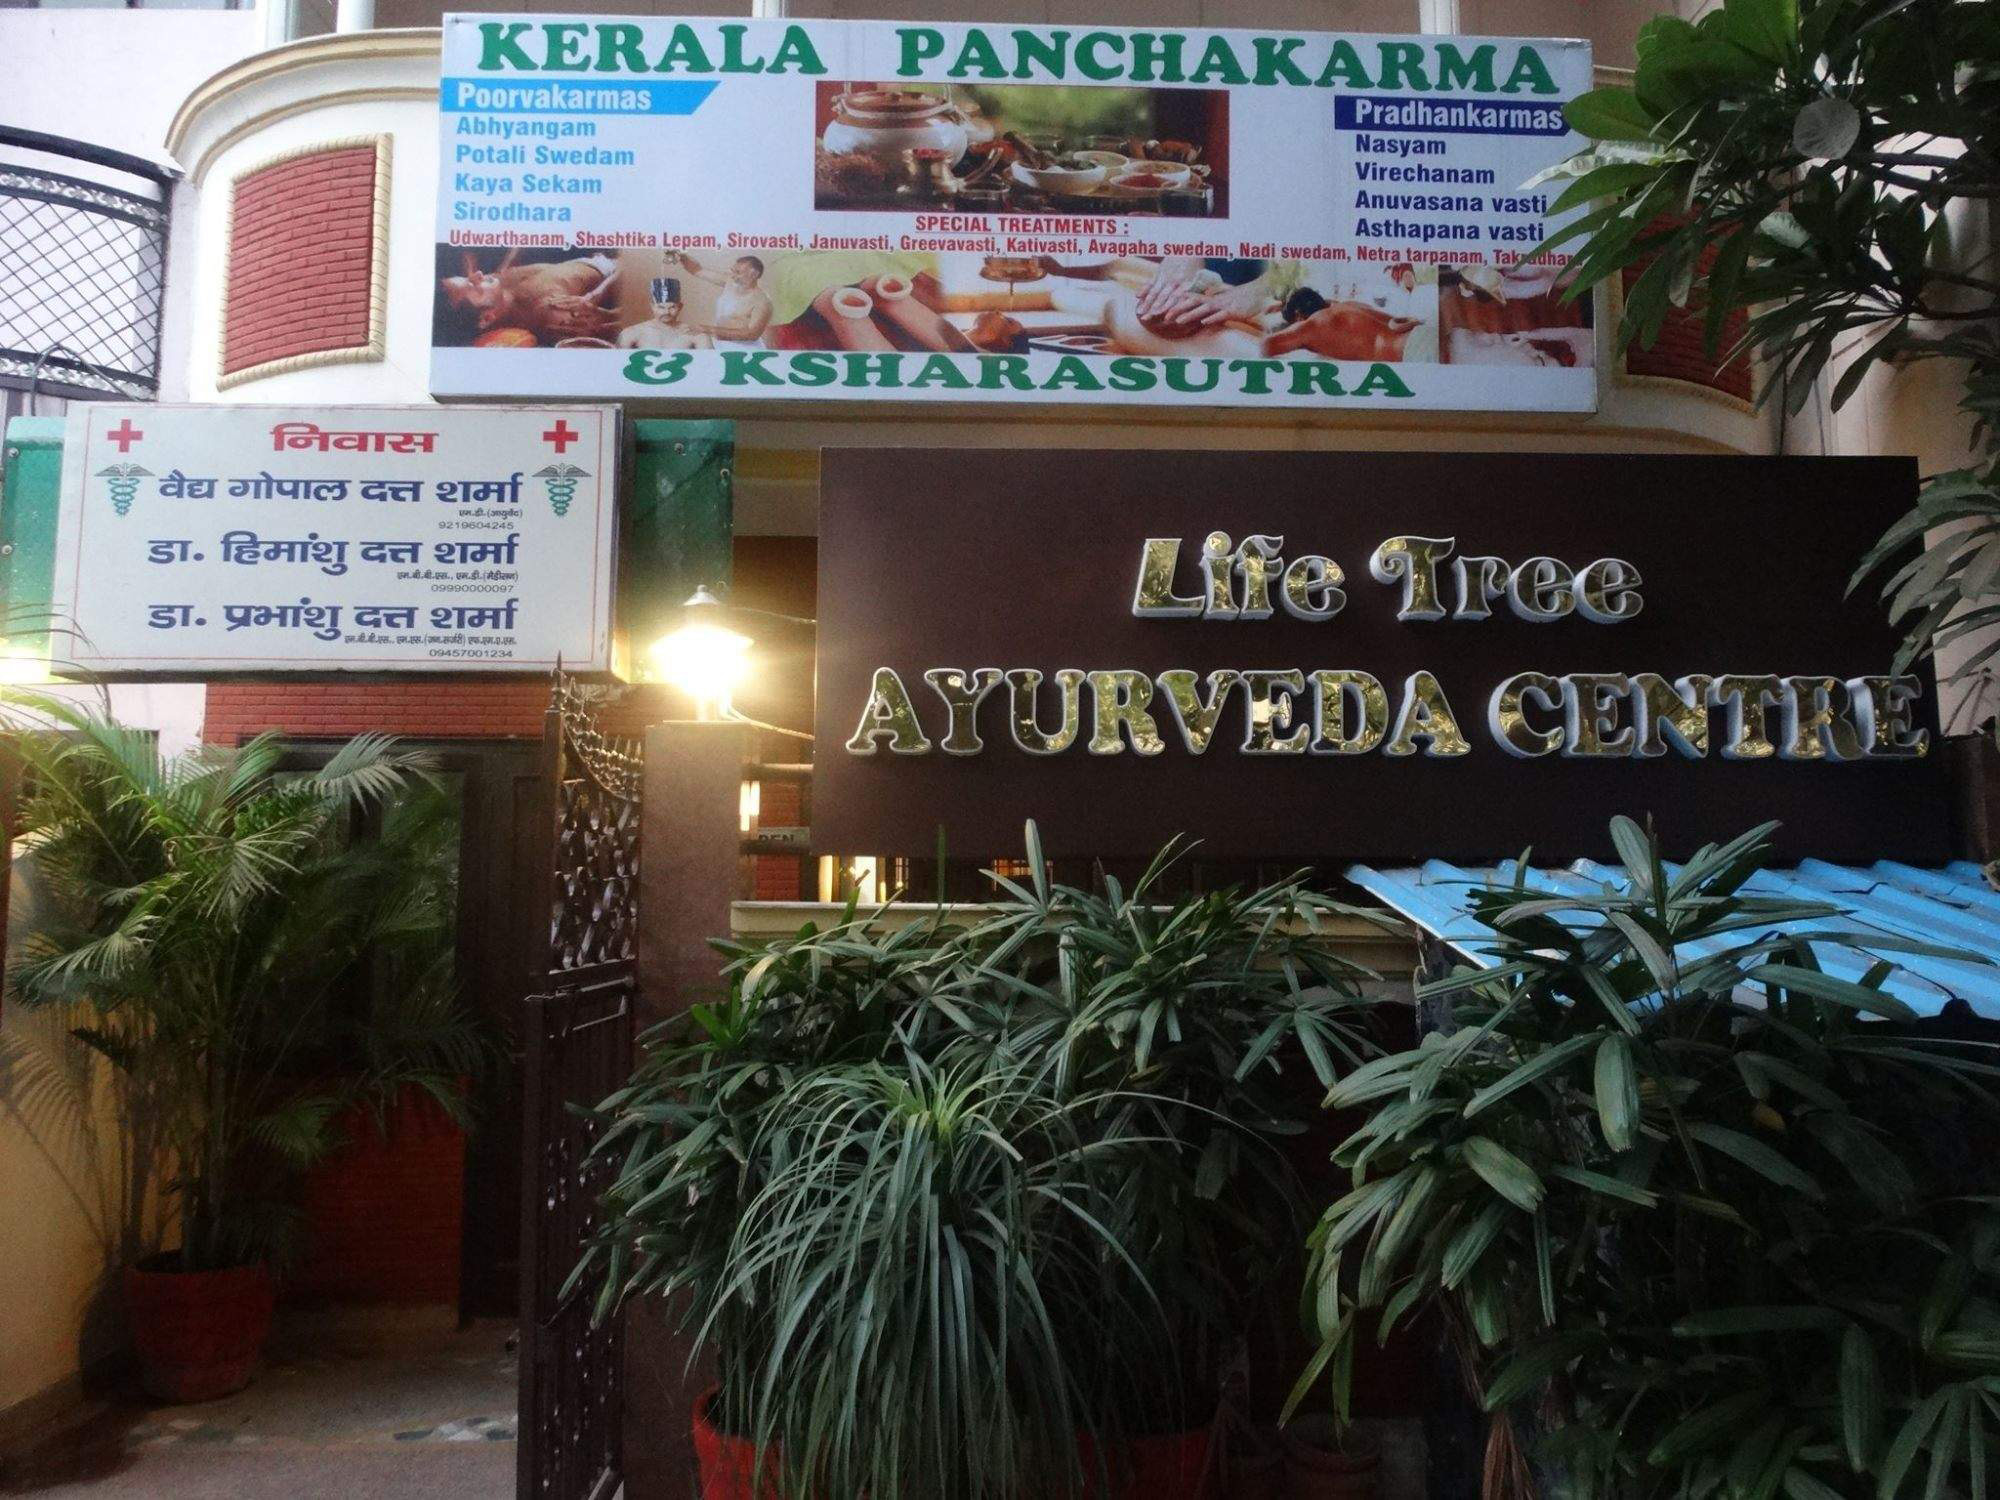 LIFE TREE AYURVEDA CENTRE